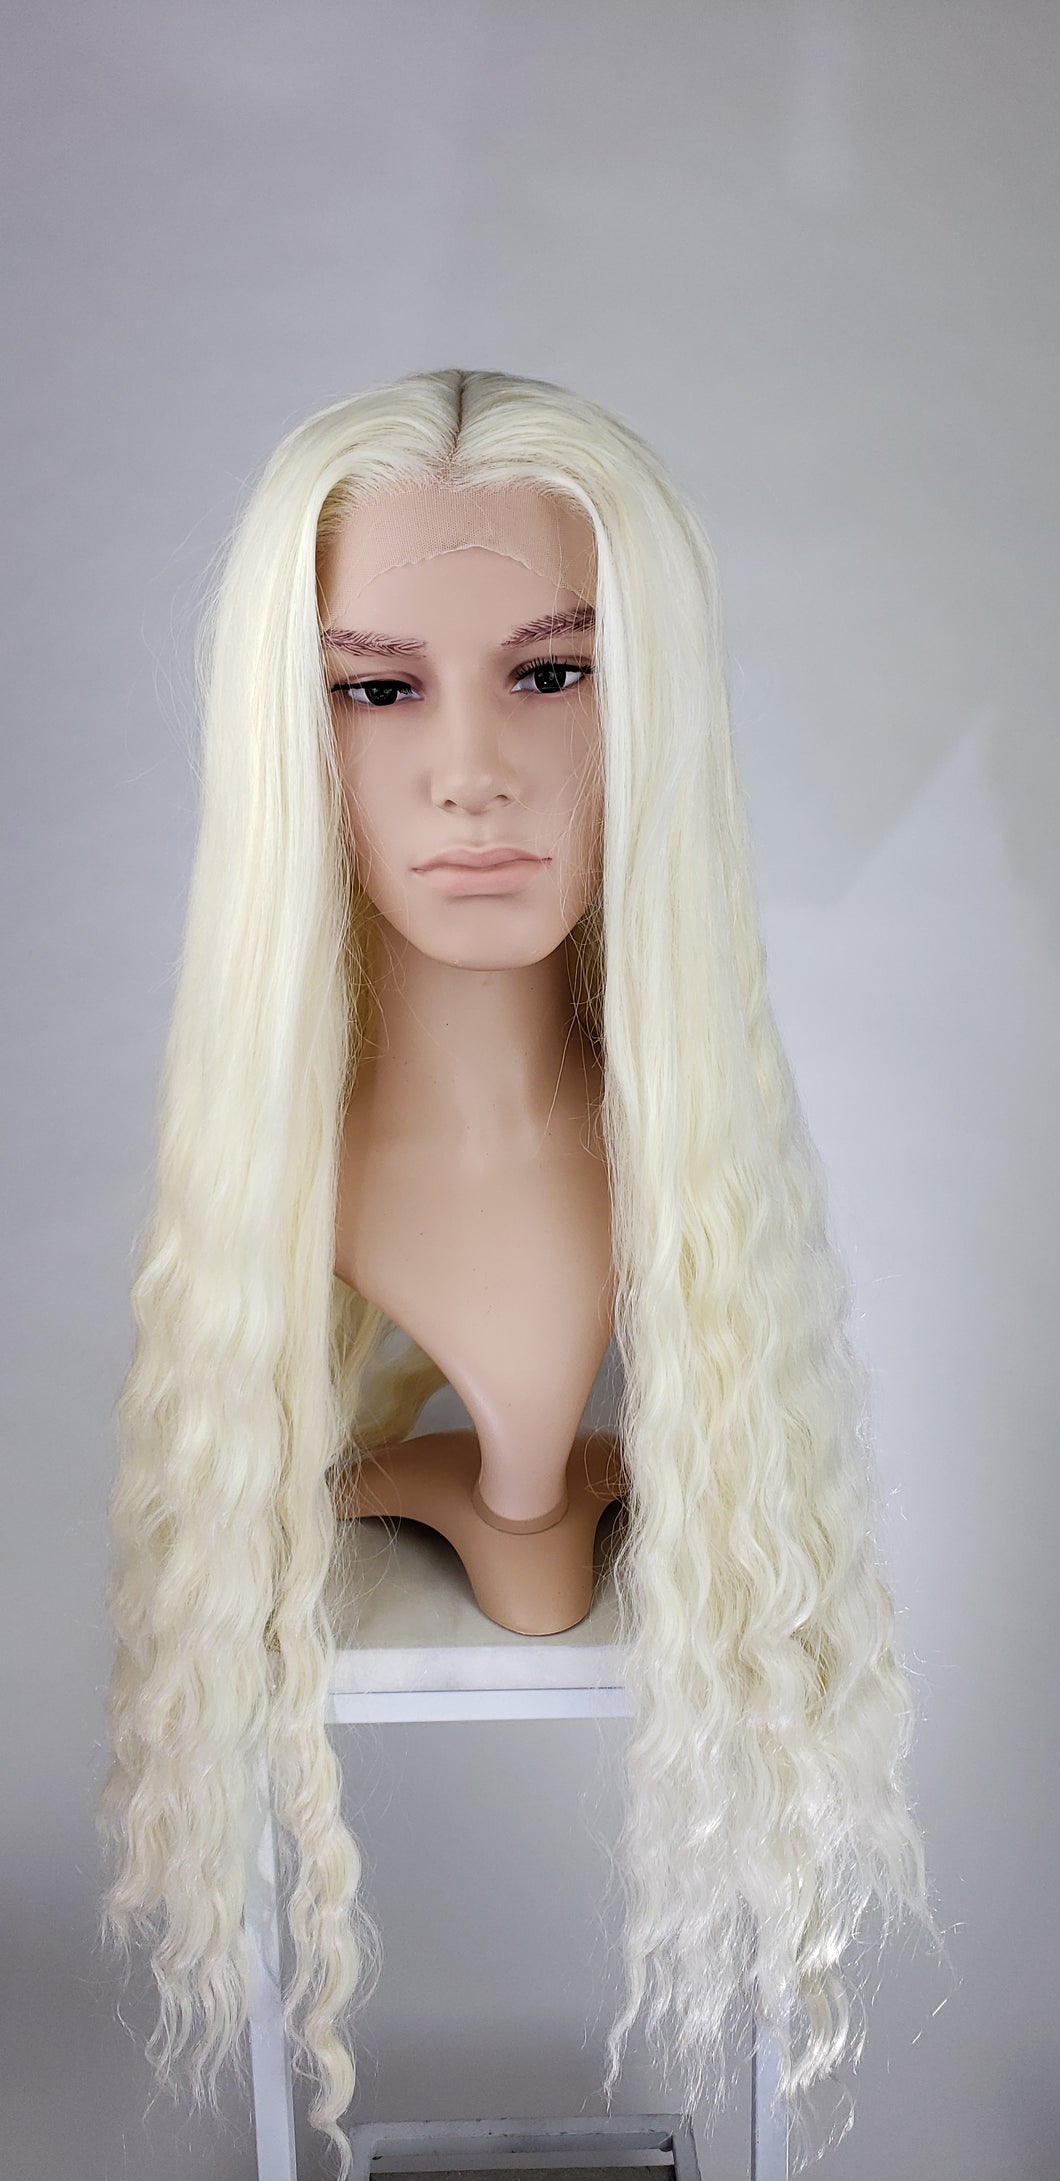 Pose Wigs Alucard Mens Crystal Blonde Long Curly Lace Front Wig - LPALU42